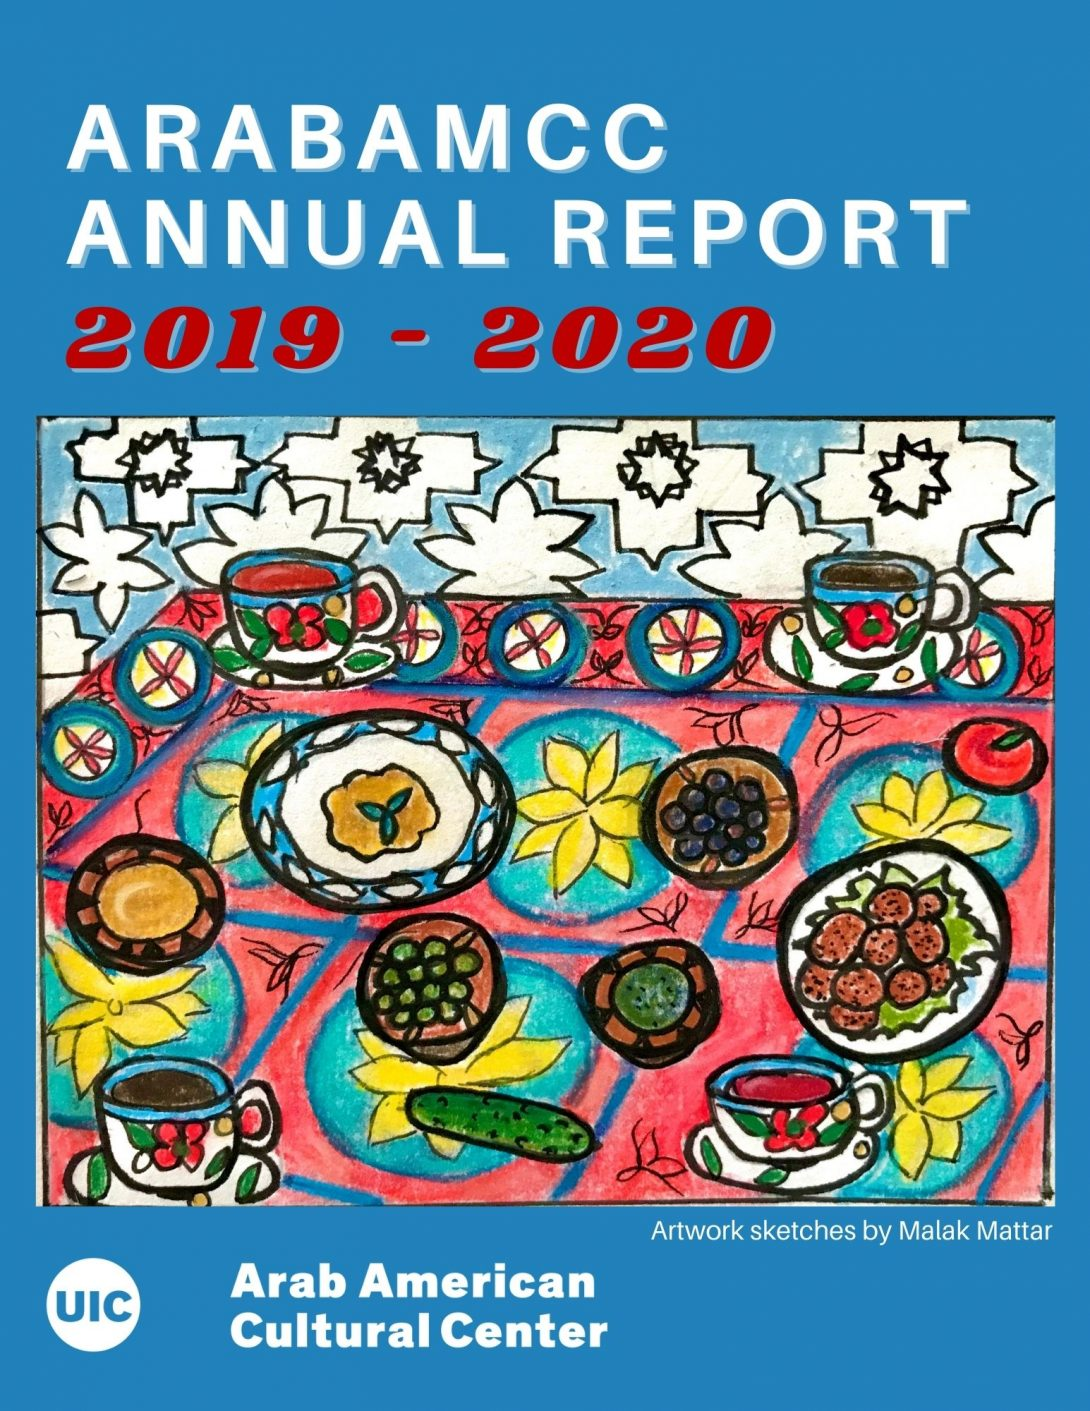 blue backgroun, title of report in white color on top, the year in red color, a drawing of a table with colorful table cloth and plates of food, tea cups on it, logo of the center in white at the bottom